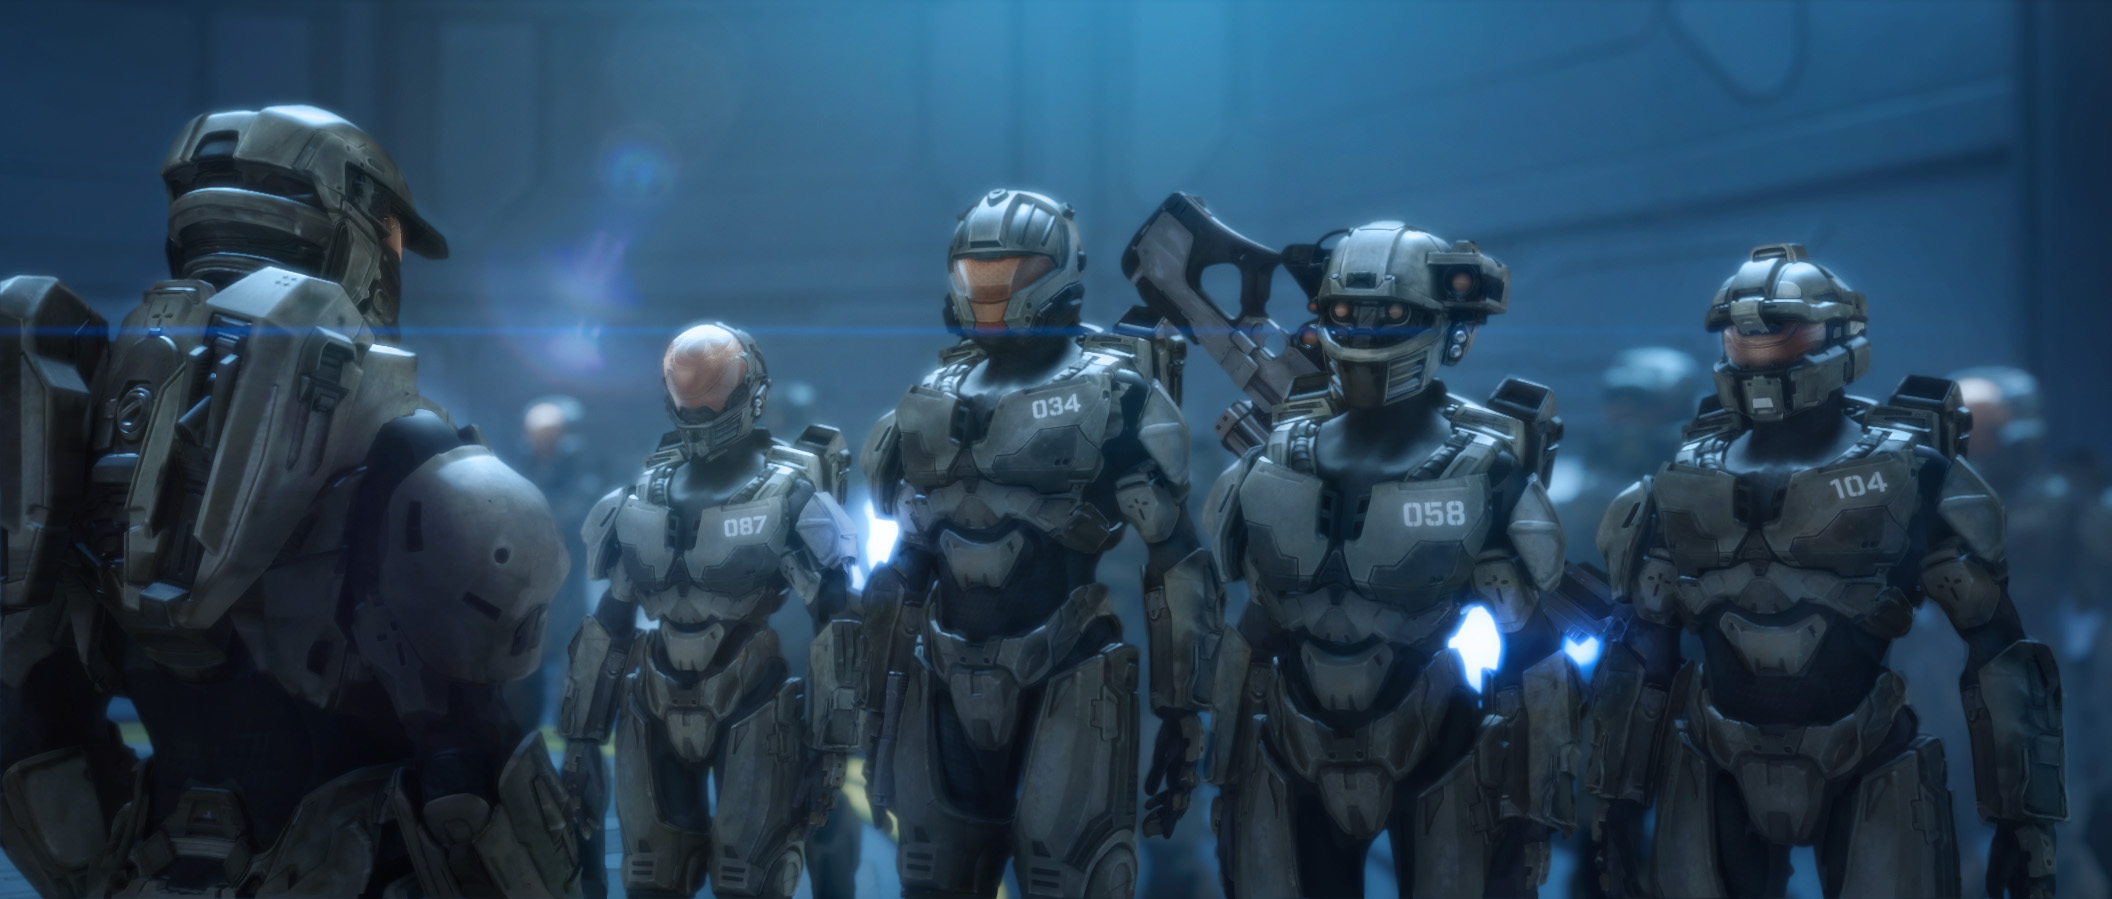 Halo Wallpaper Fall Of Reach Frankie Powers The Master Chief S Inaugural Adventure In